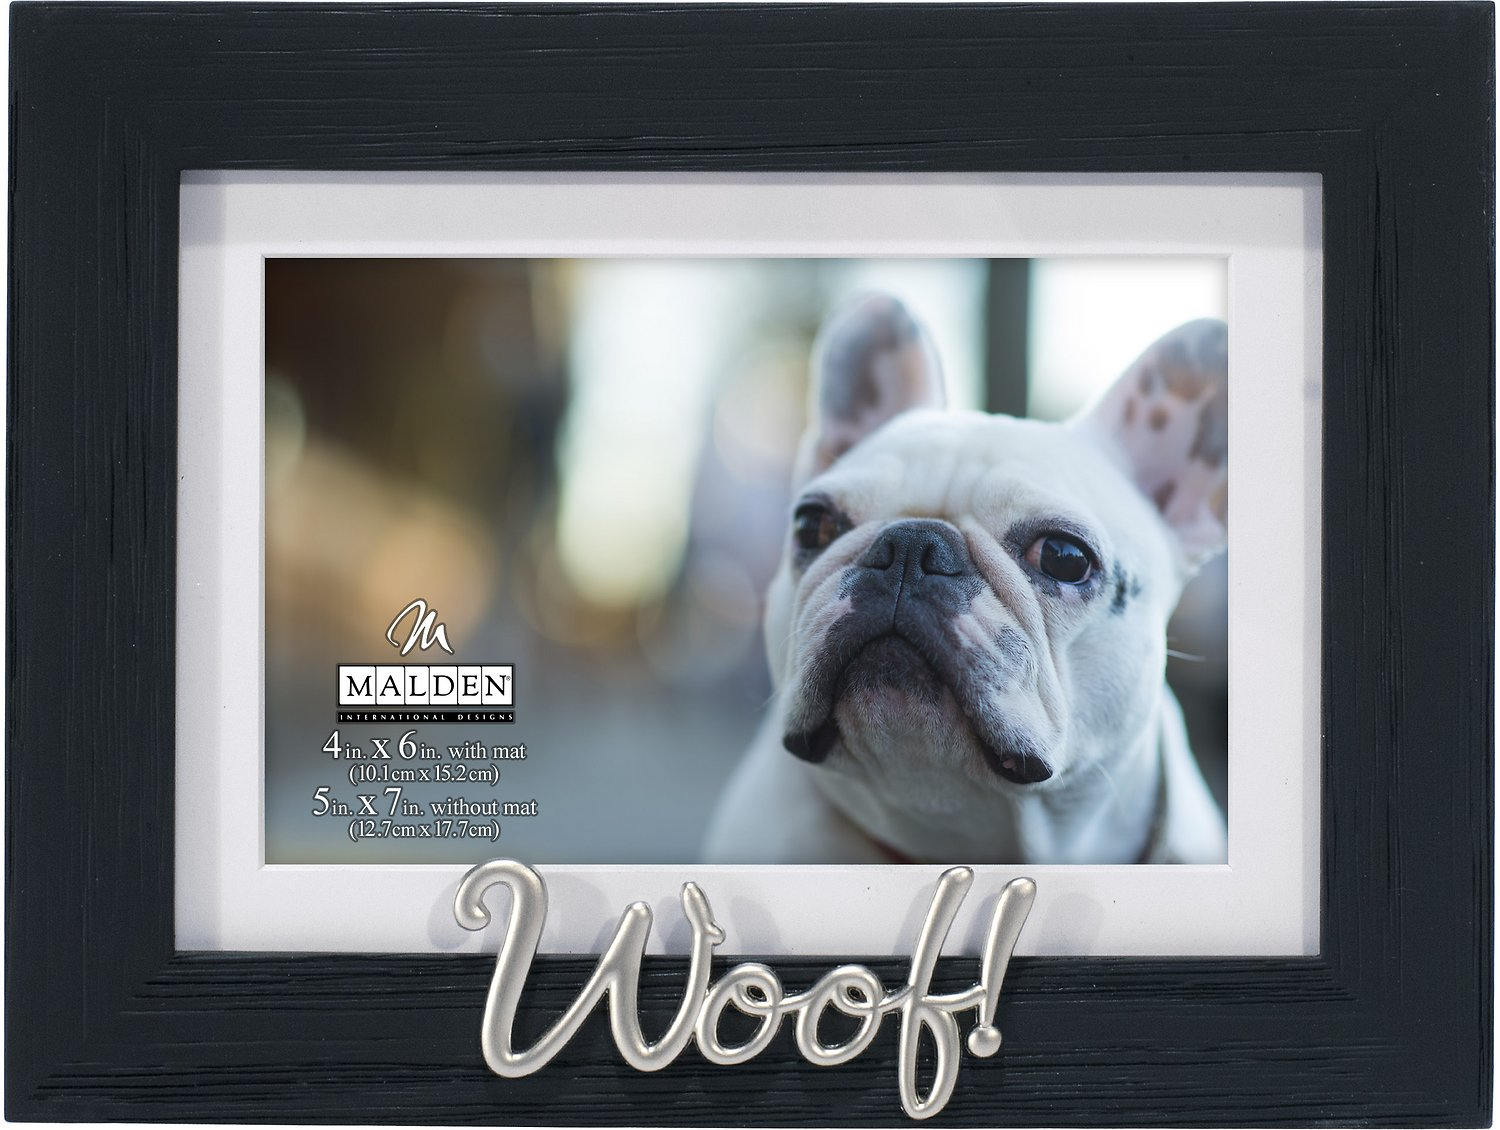 Malden international designs matted woof dog picture frame 4 x roll over image to zoom in jeuxipadfo Images